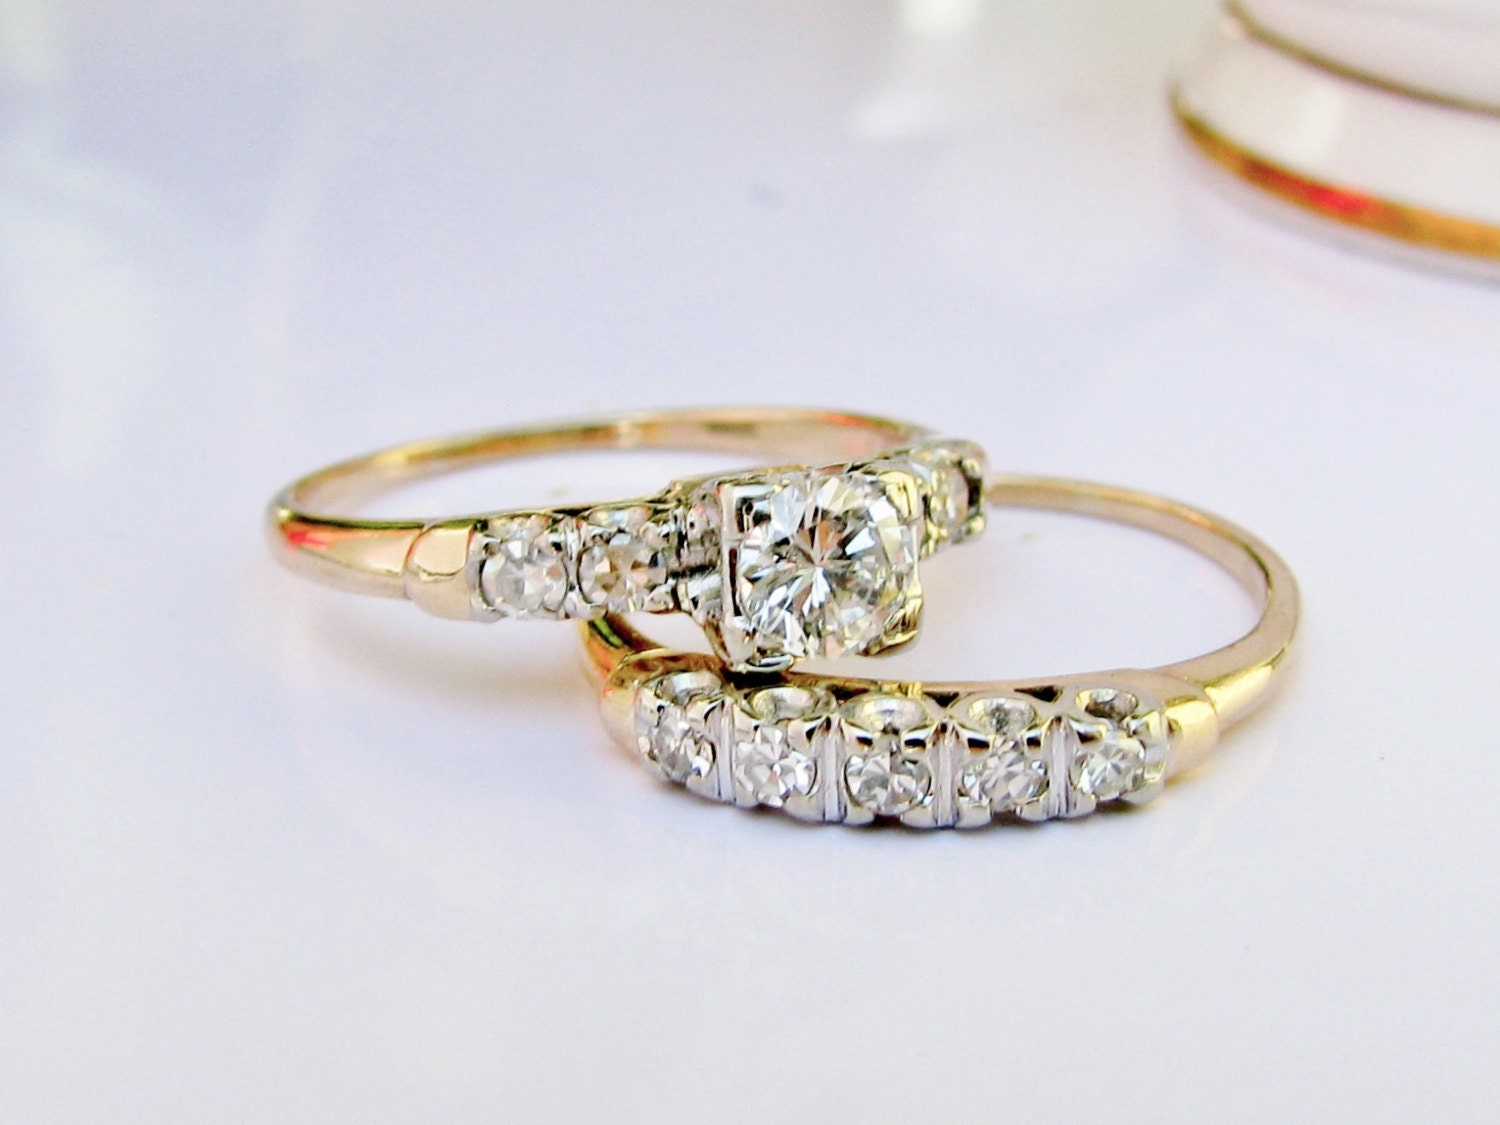 Vintage engagement ring diamond wedding band set 14k two tone for Wedding band for engagement ring